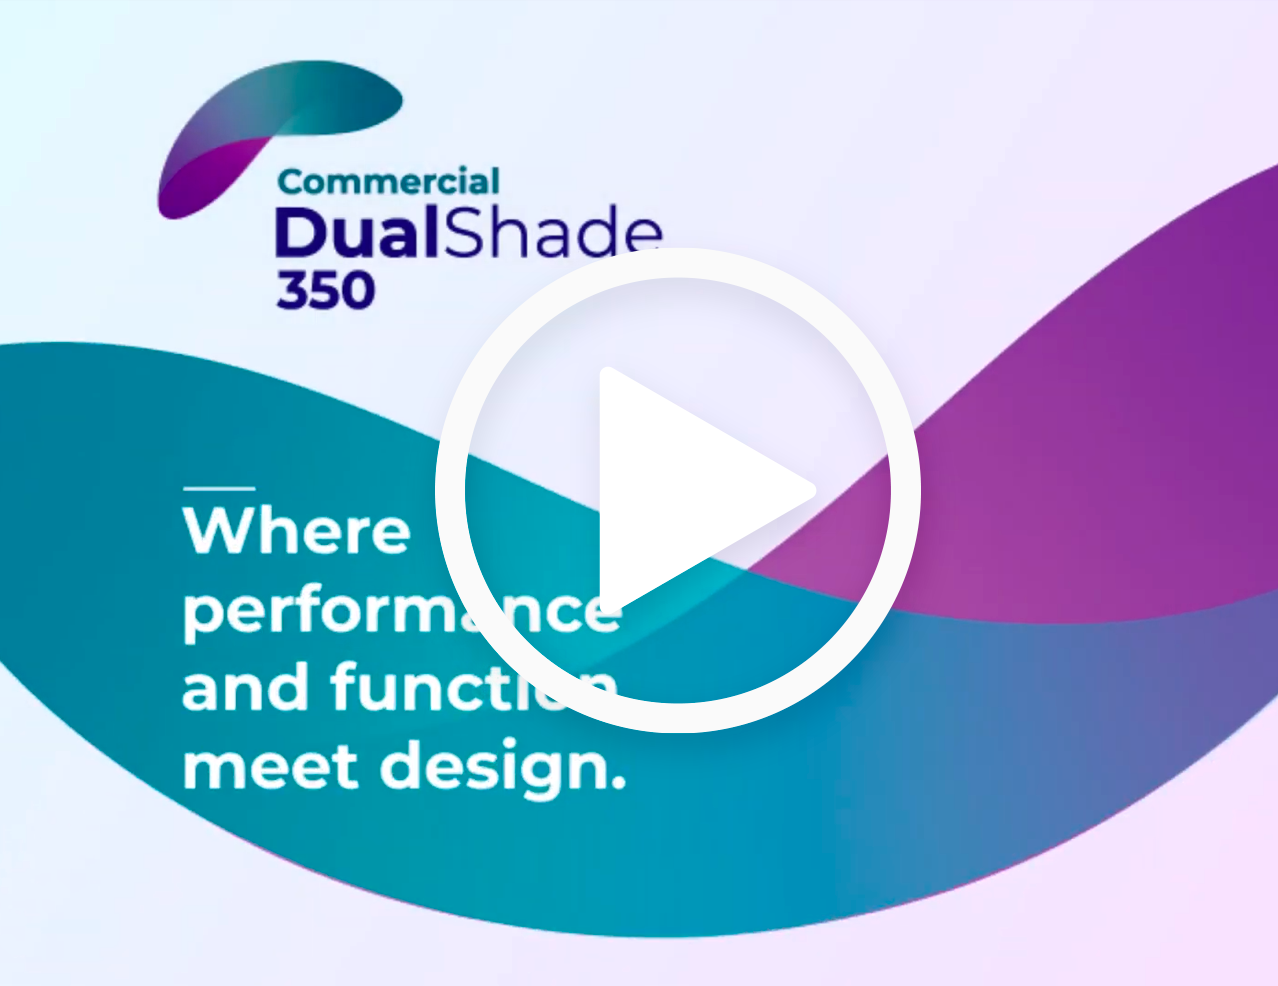 Where performance and function meet design with a play button above it.